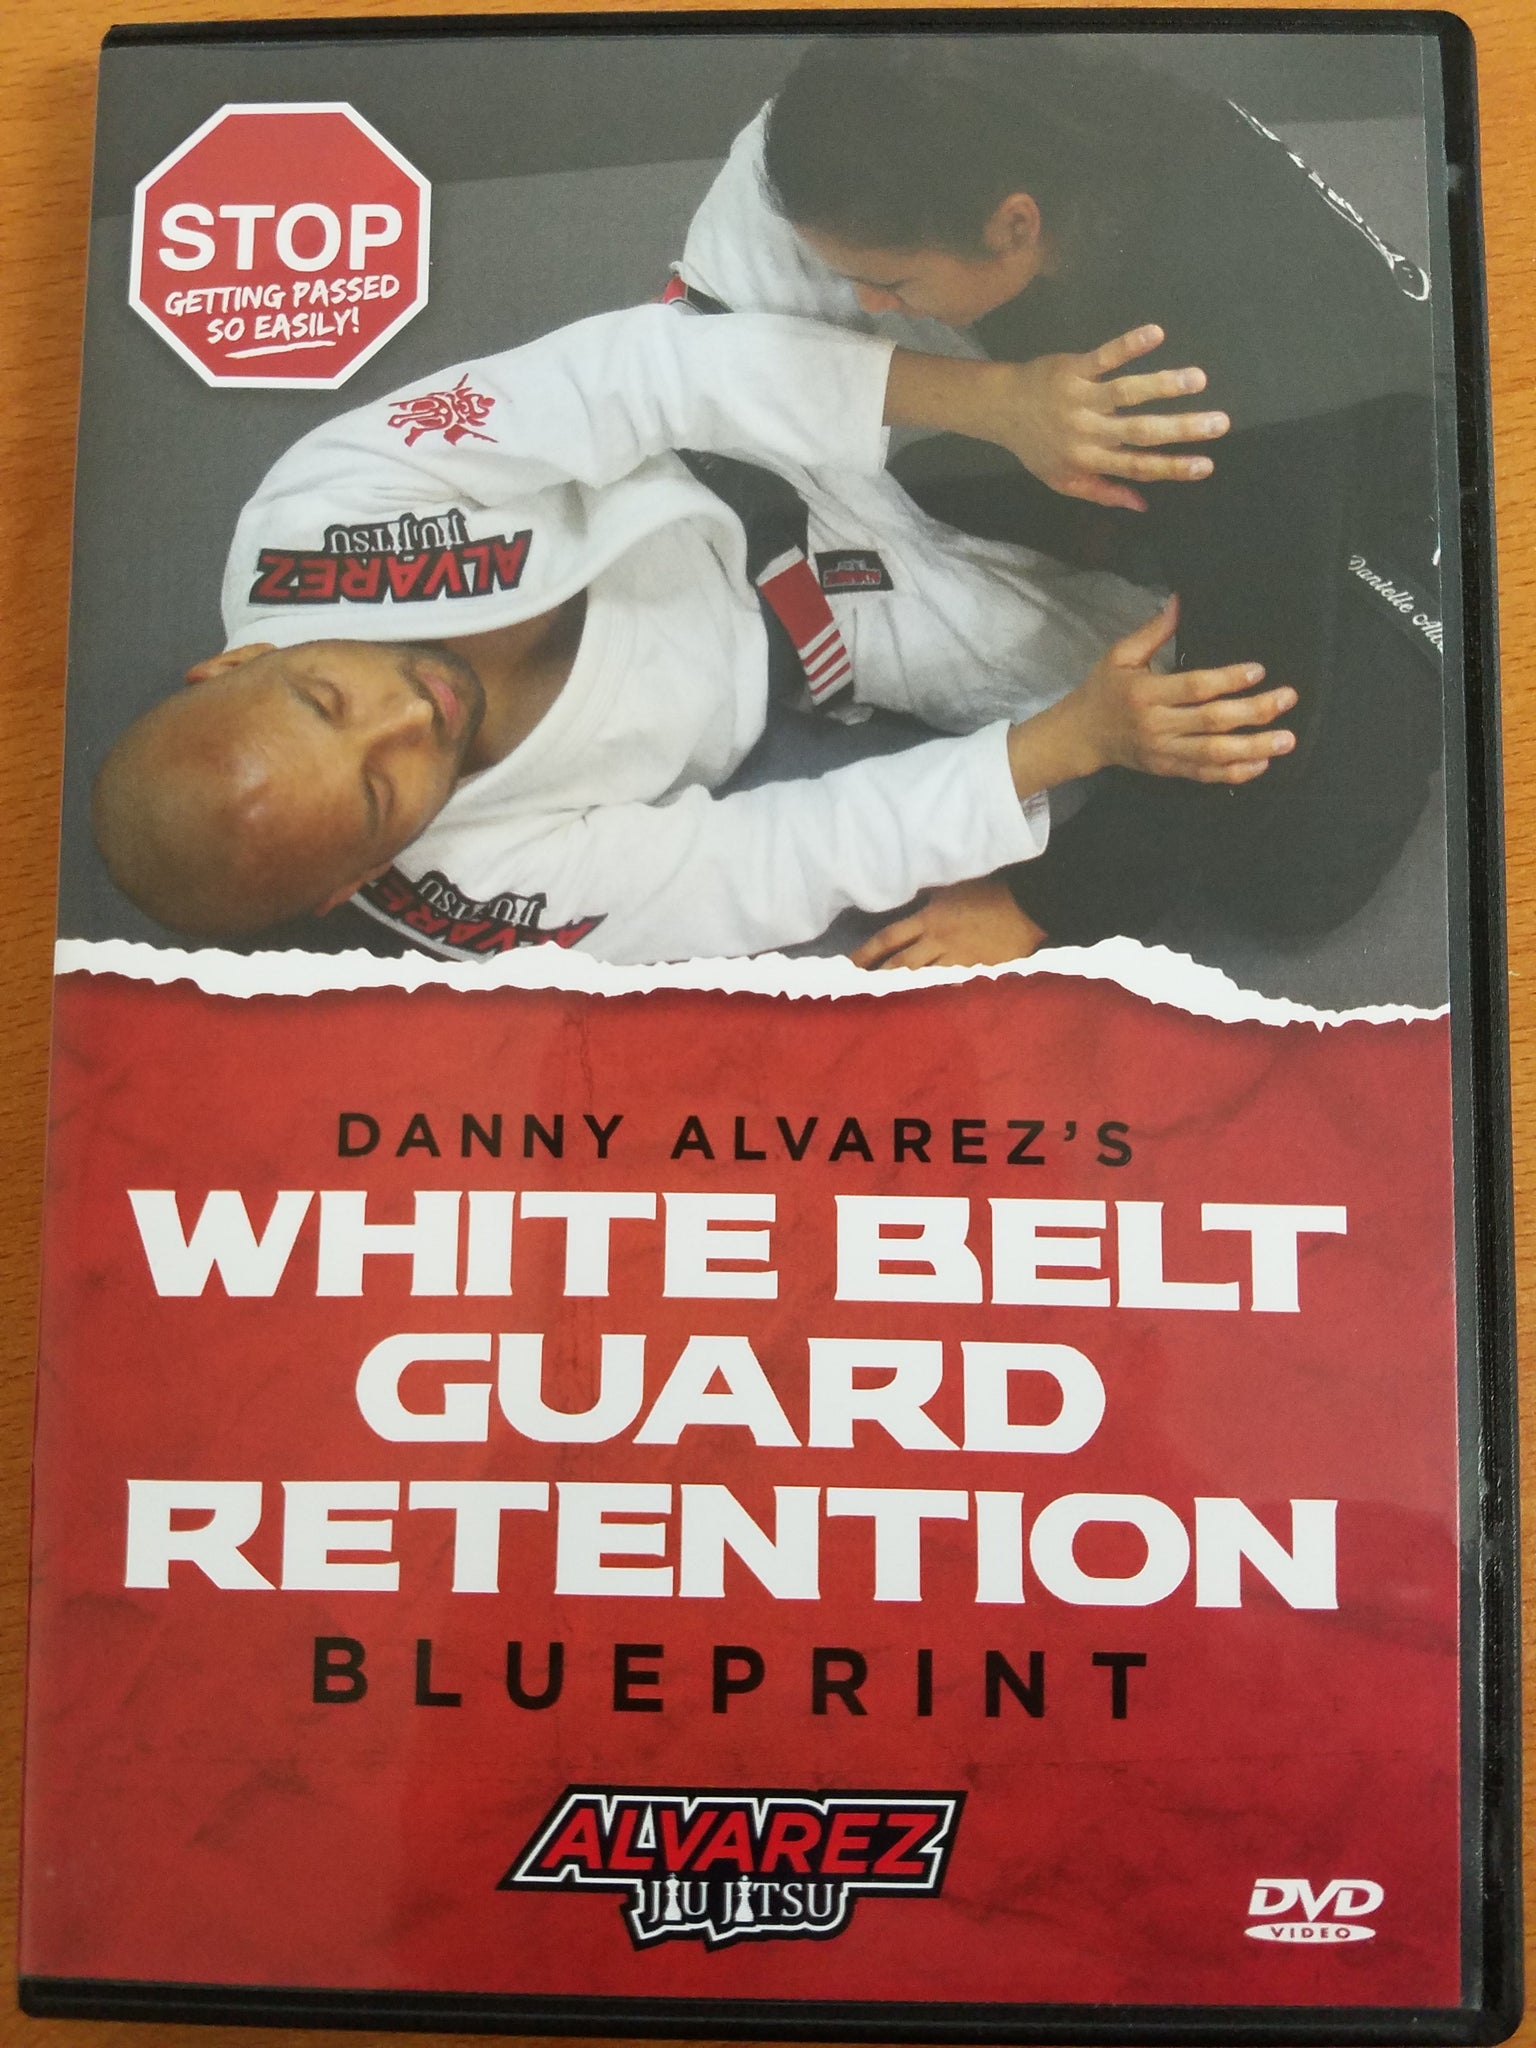 White Belt Guard Retention Blueprint 2 DVD Set by Danny Alvarez - Budovideos